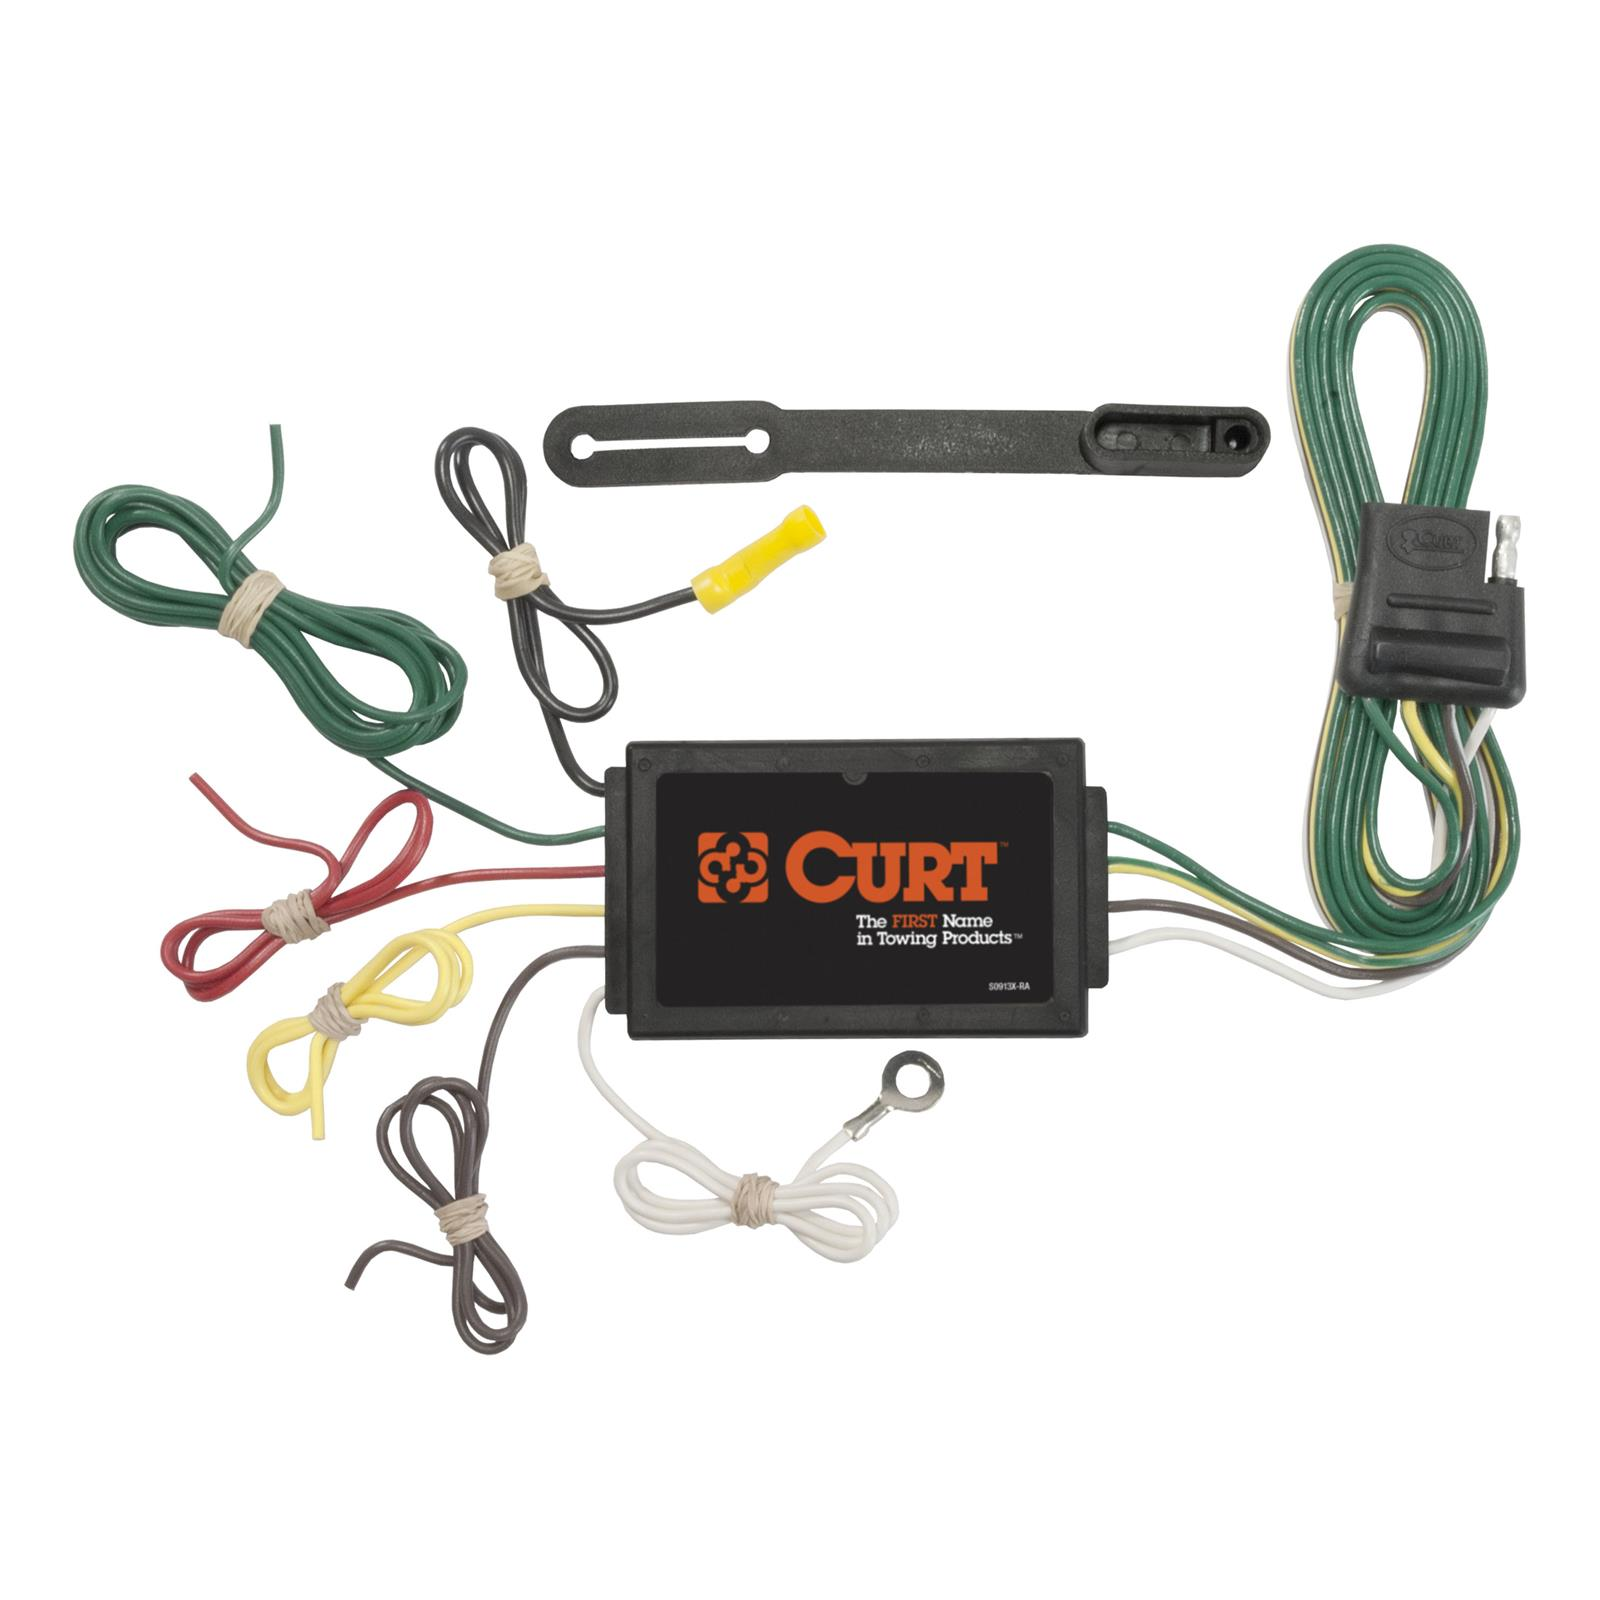 Equipment Trailer Wiring Harness : Curt vehicle towing harness adapter trailer wire